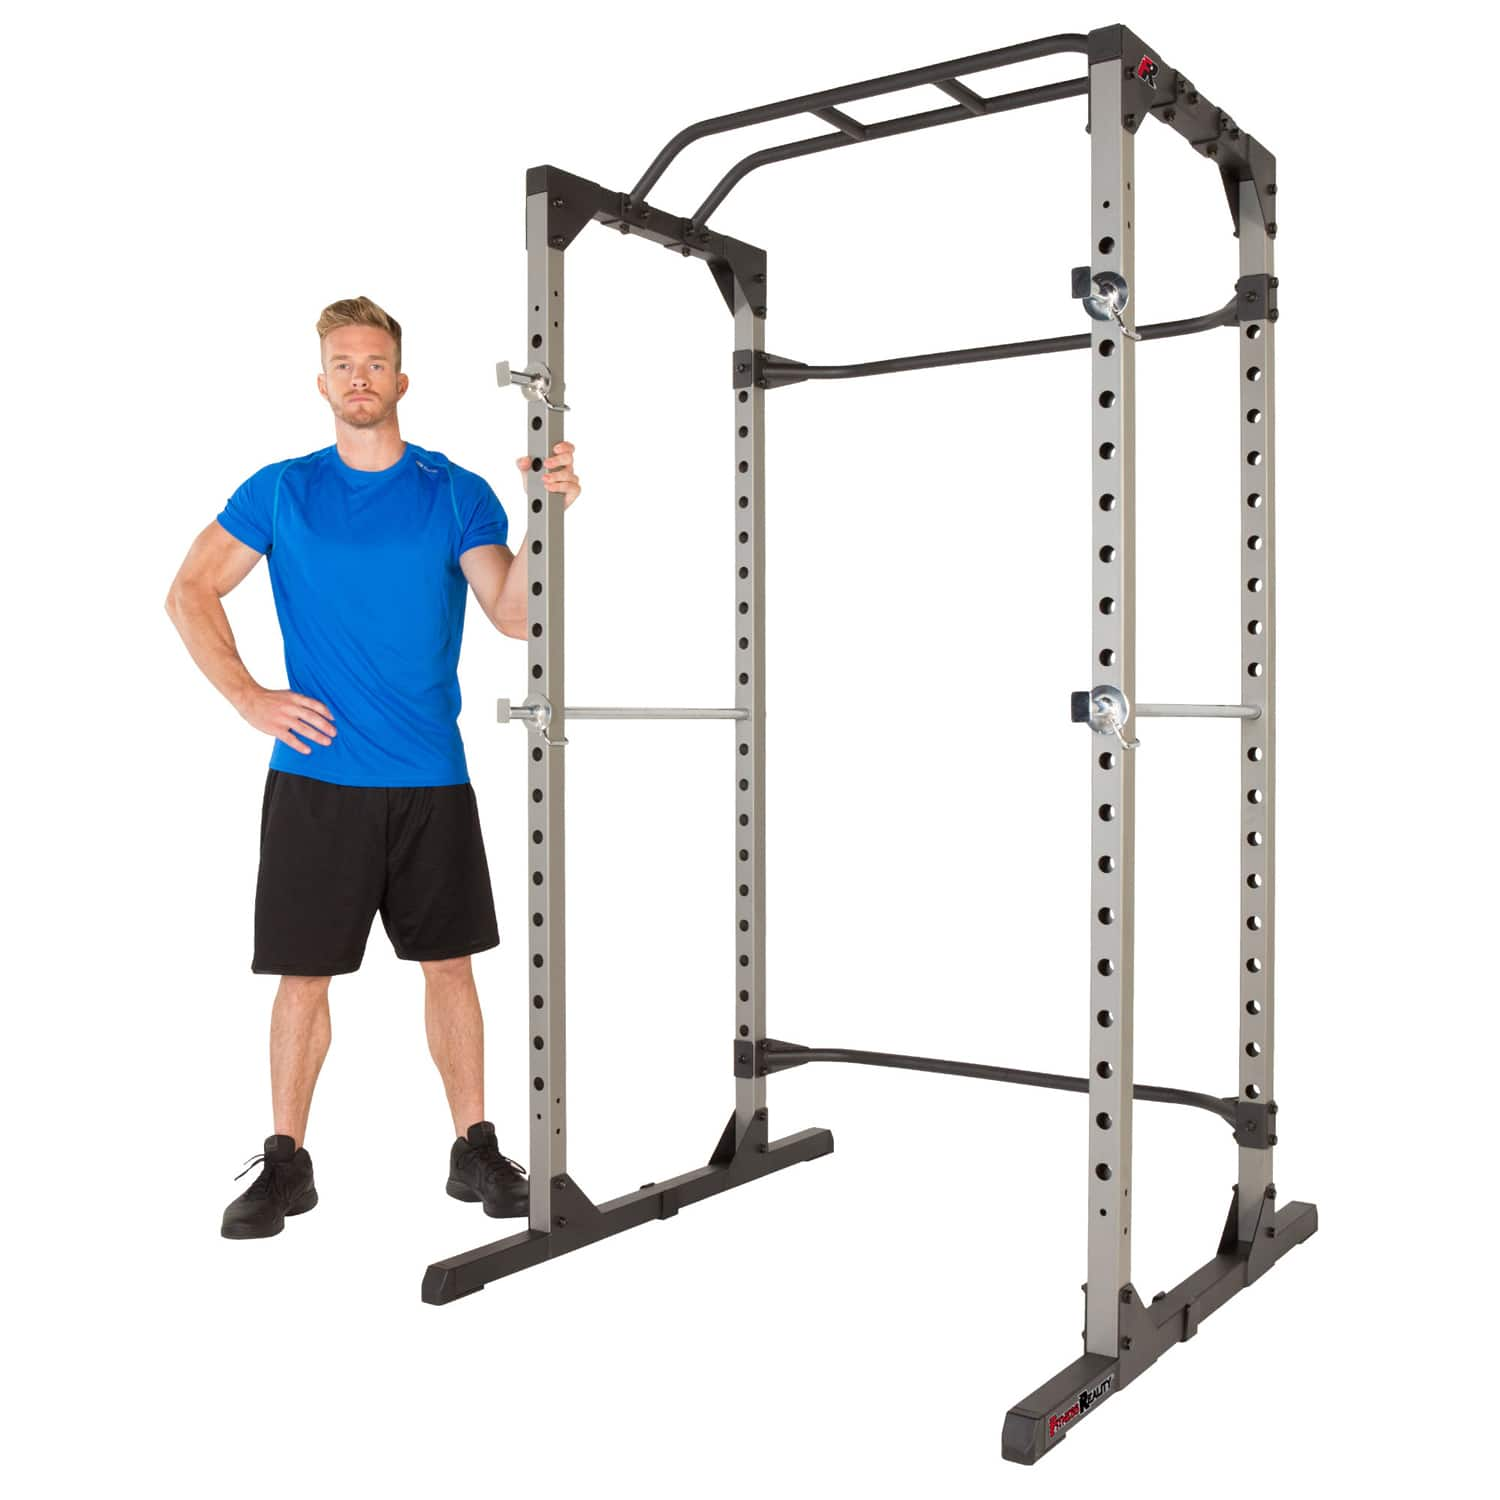 FITNESS REALITY 1000 Ultra 800lb Weight Capacity Power Rack Cage $199